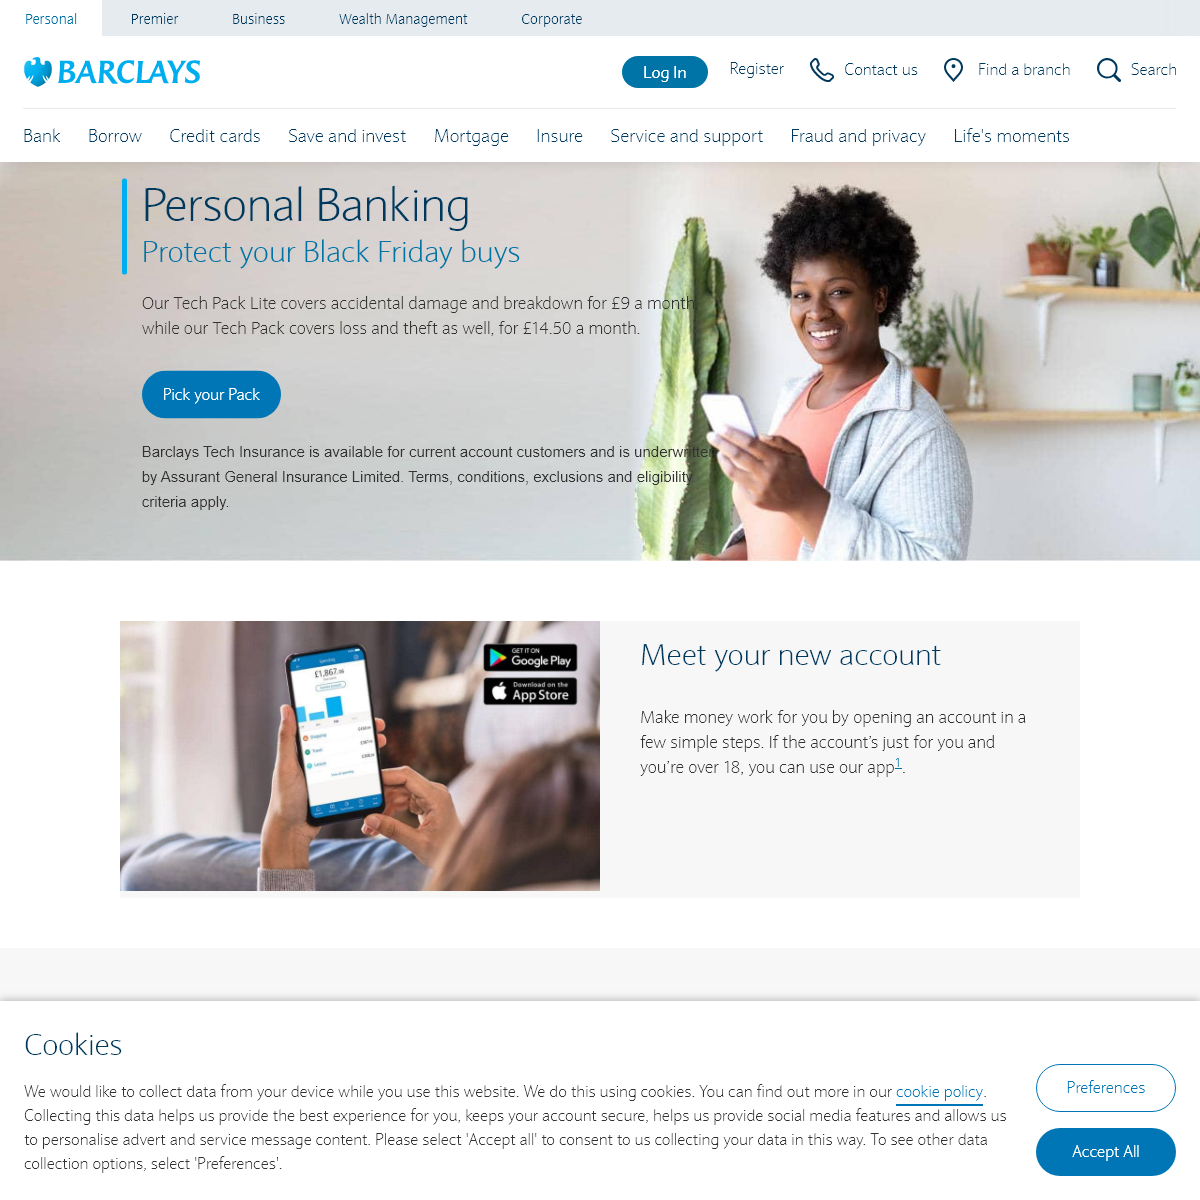 Personal banking - Barclays